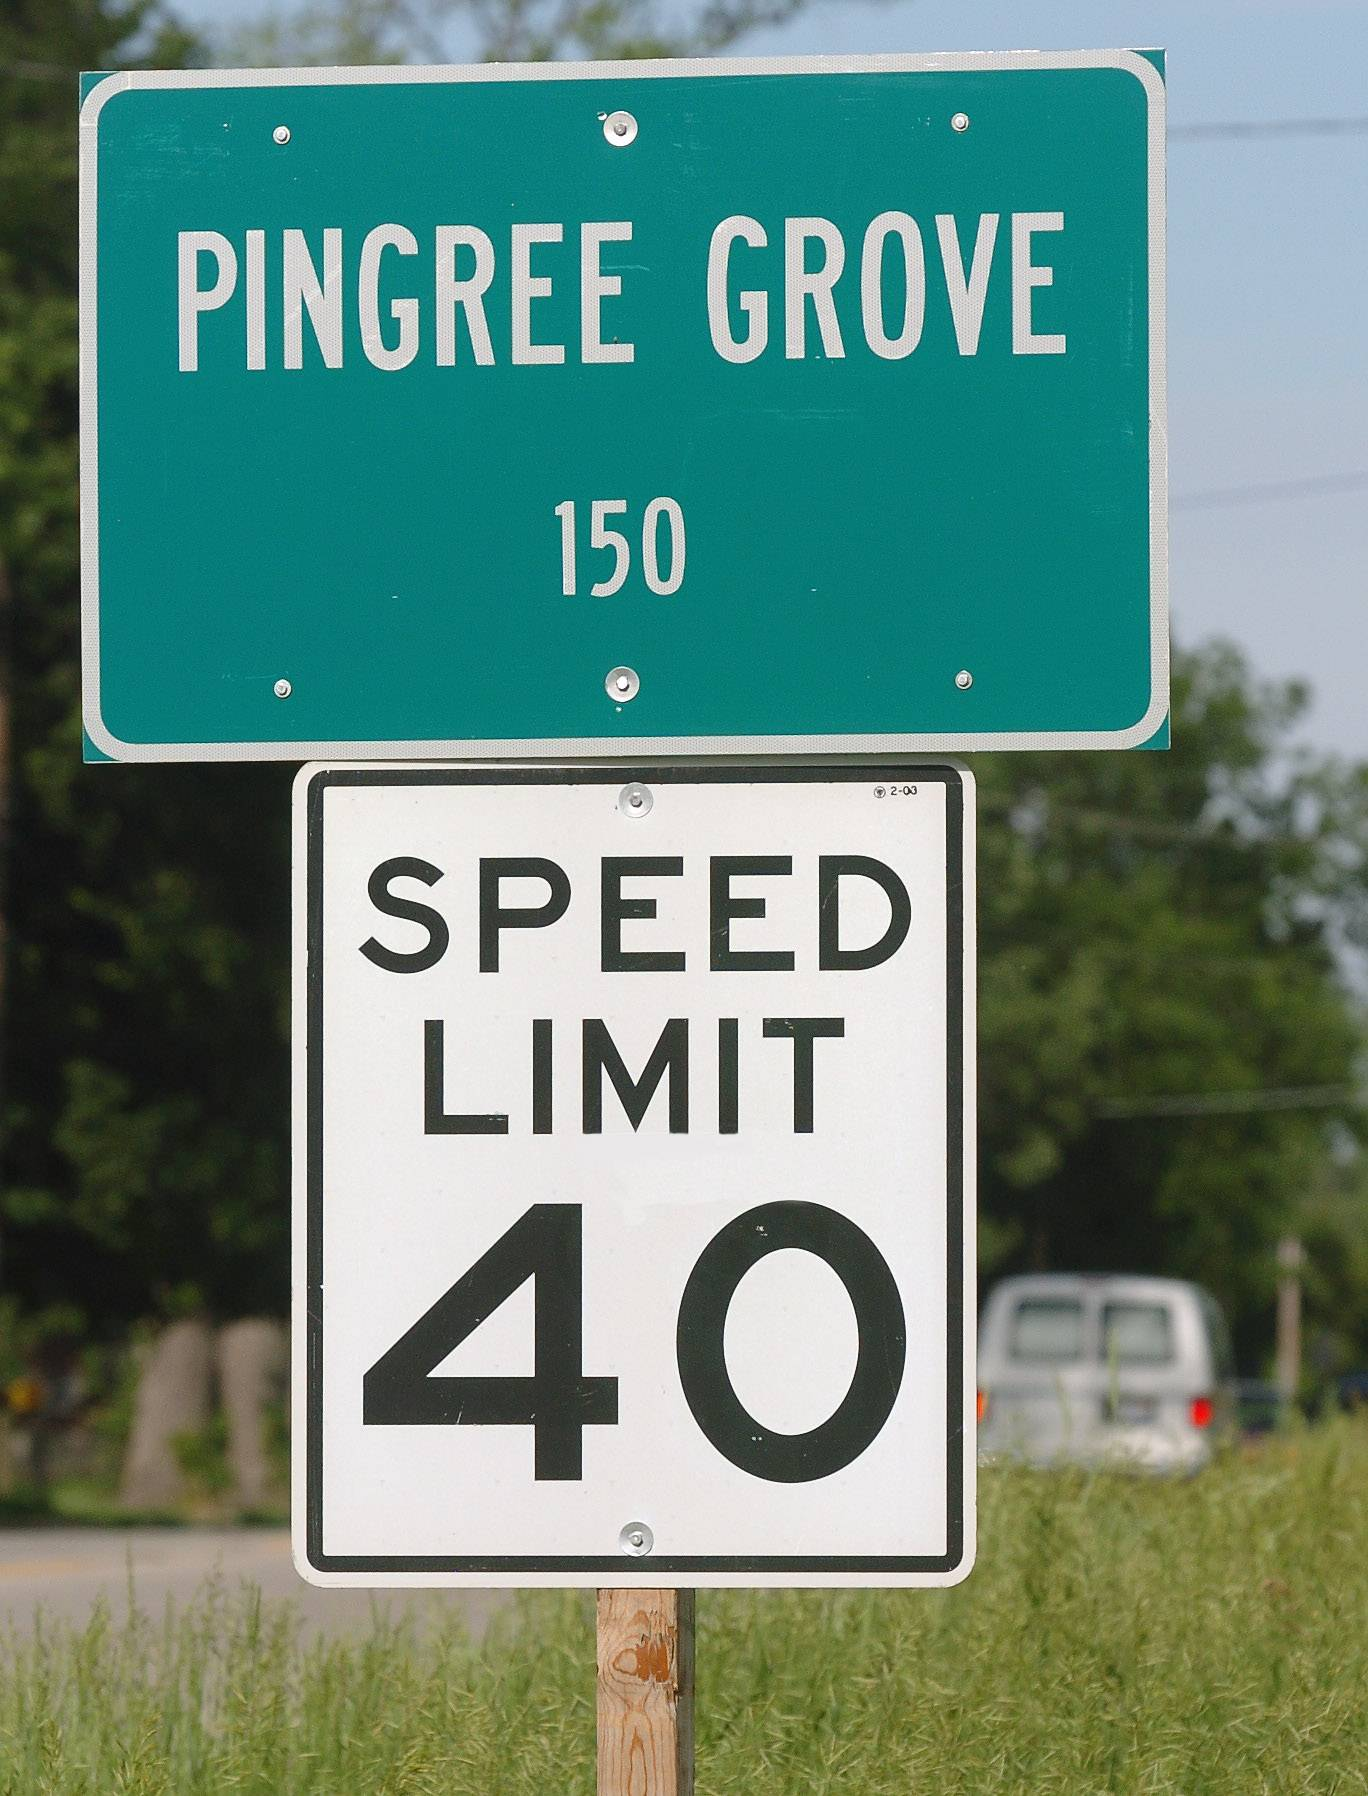 Pingree Grove is one of the fastest-growing suburbs, with 768 new residents last year bringing its population to 6,648.